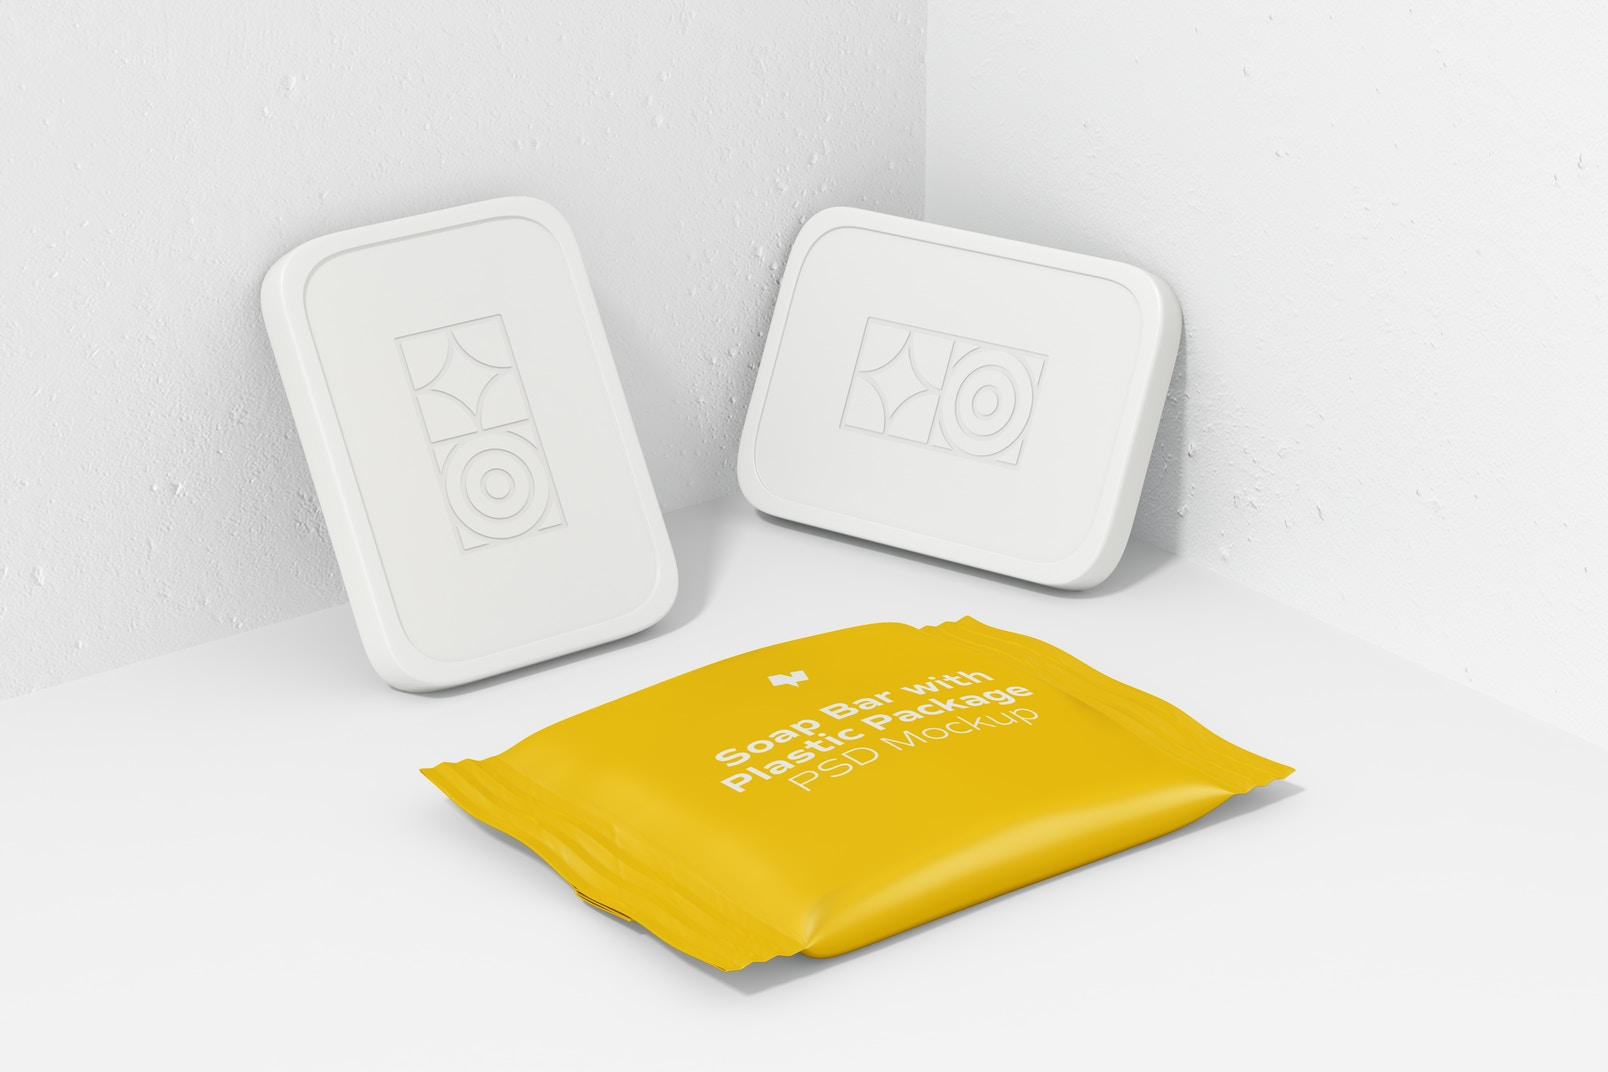 Soap Bars with Plastic Package Mockup